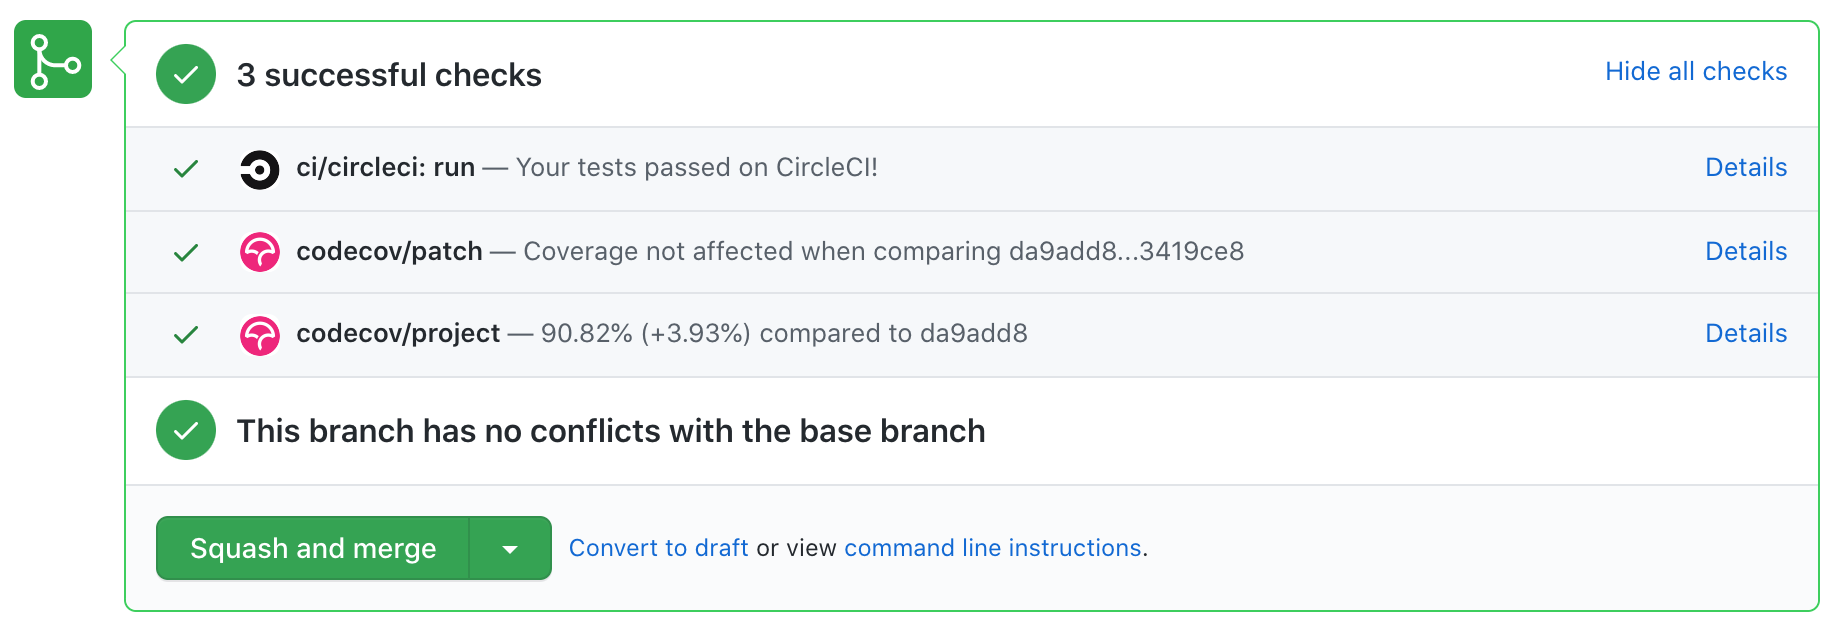 Clear completed todos pull request status checks